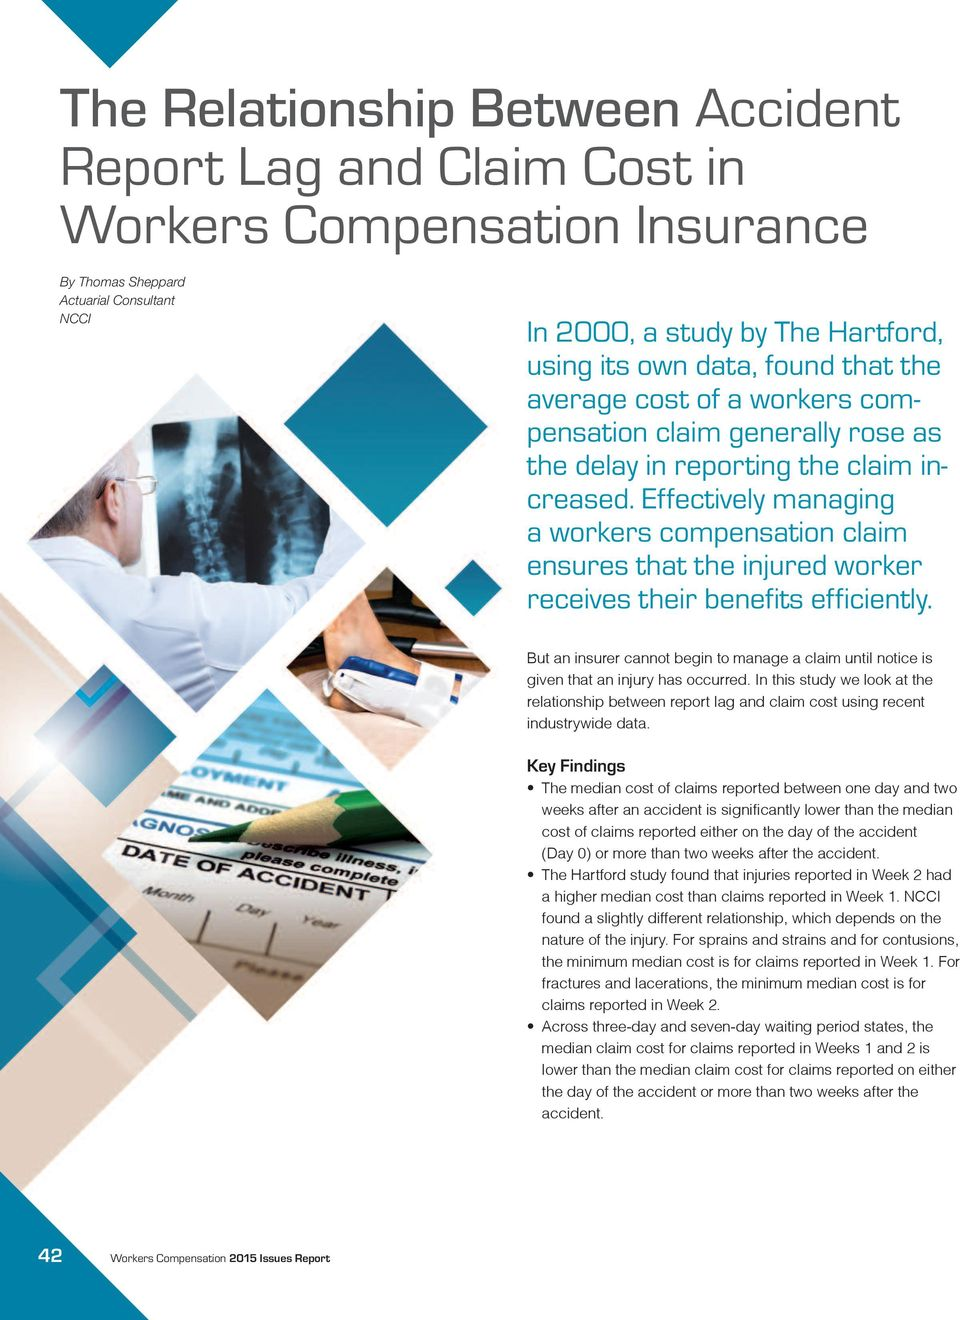 Effectively managing a workers compensation claim ensures that the injured worker receives their benefits efficiently.